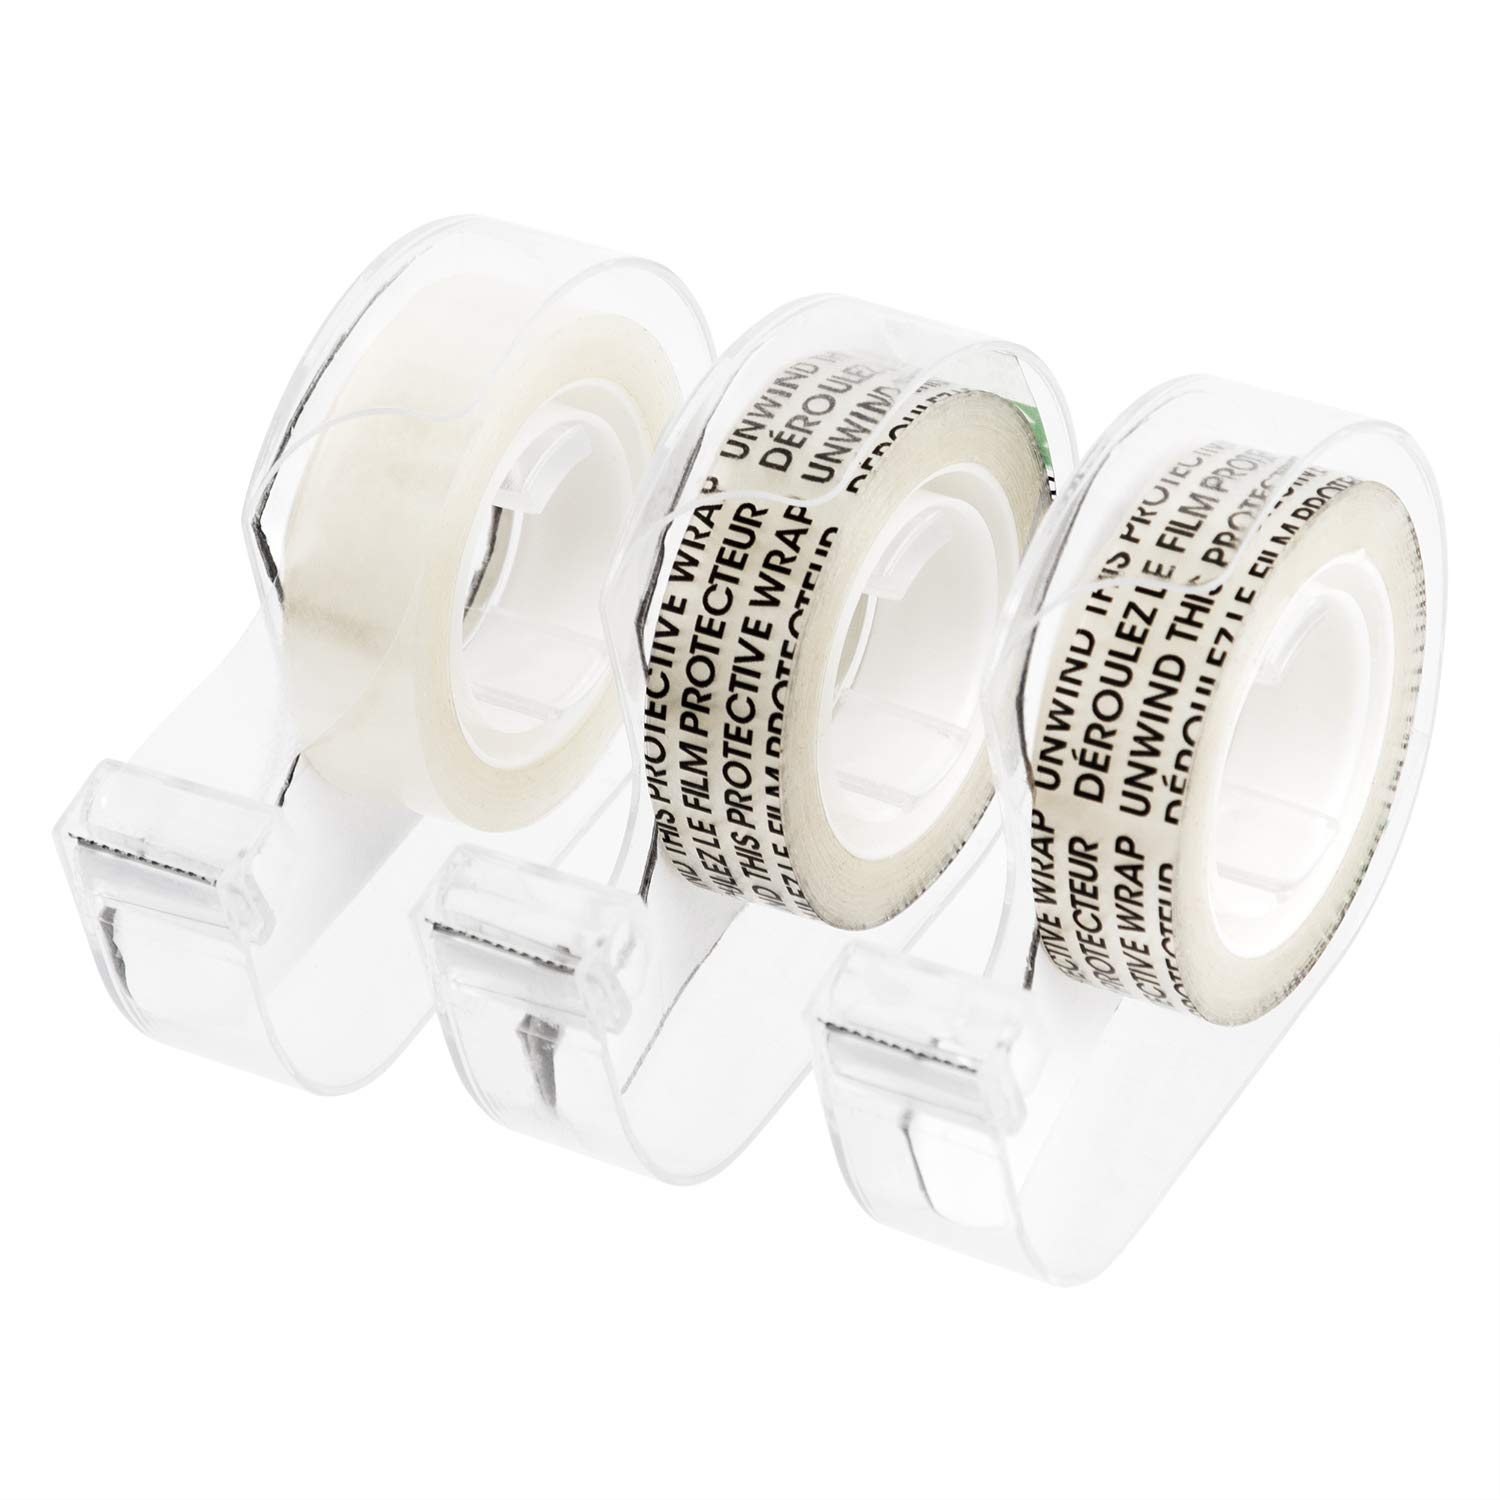 1//2 x 7 yds basics Double Sided Tape with Dispenser Narrow Width 3//Pack Caddy Engineered for Bonding